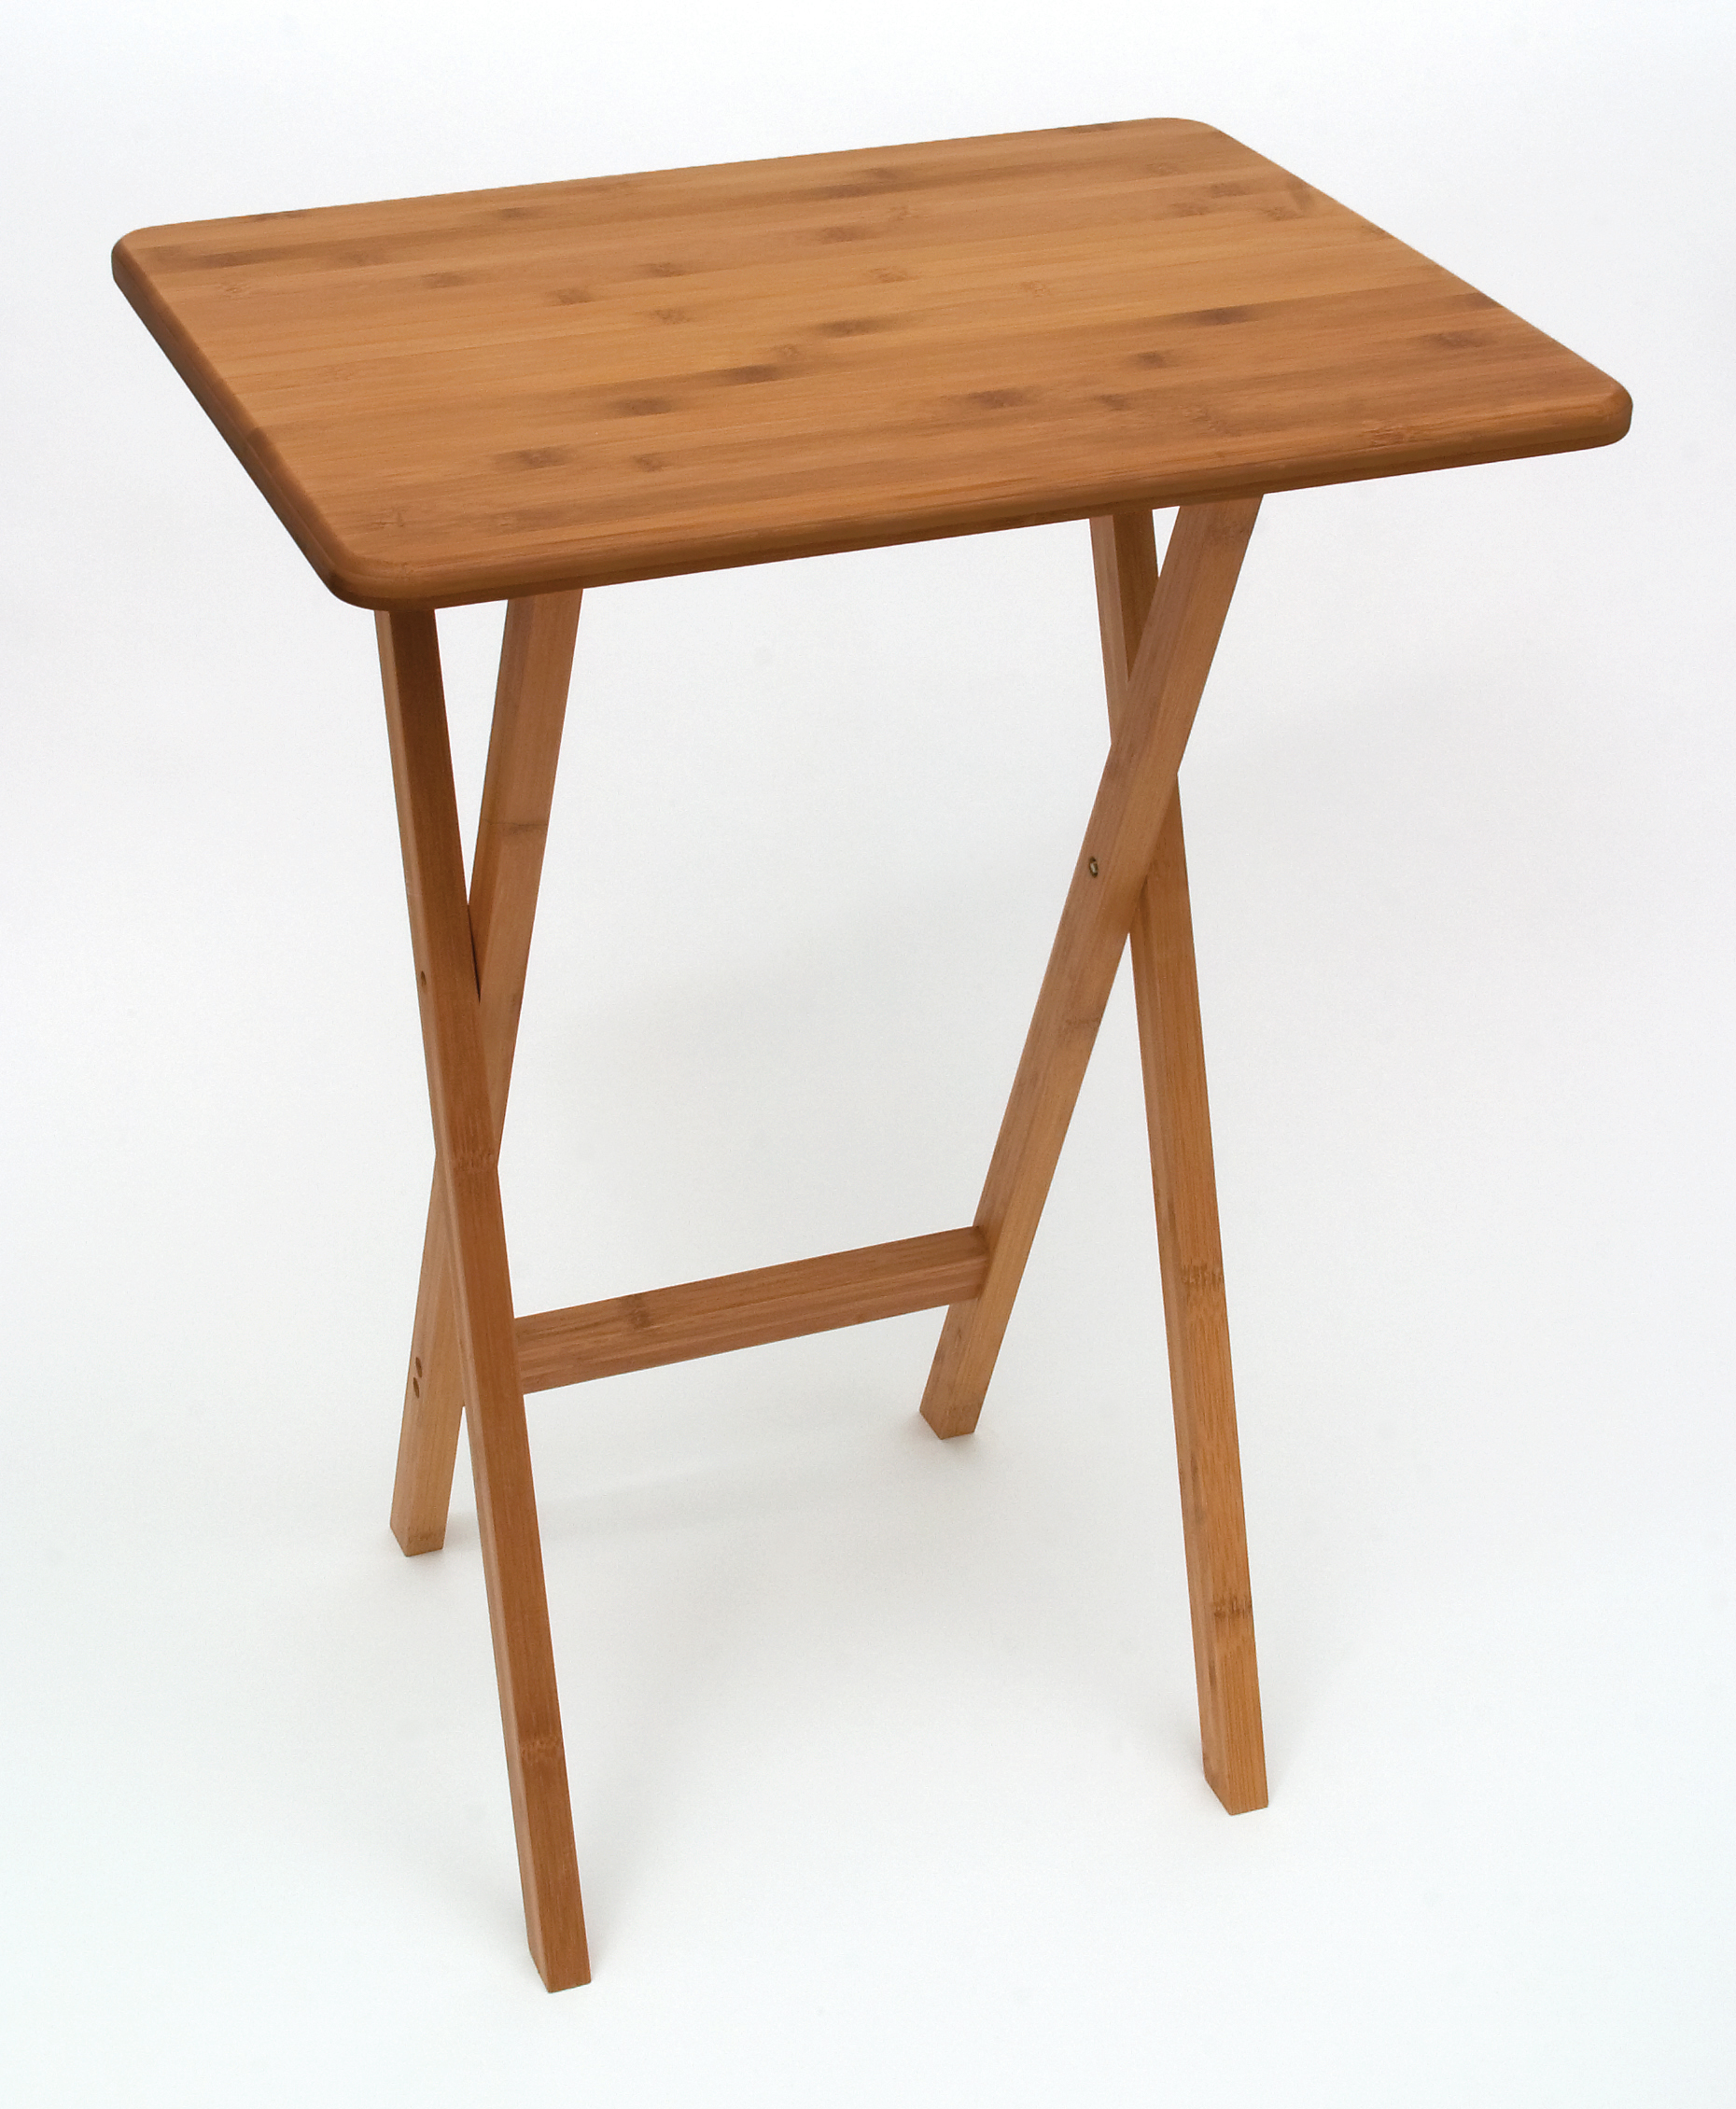 & Bamboo Rectangular Snack Tables | Lipper International Snack Tables